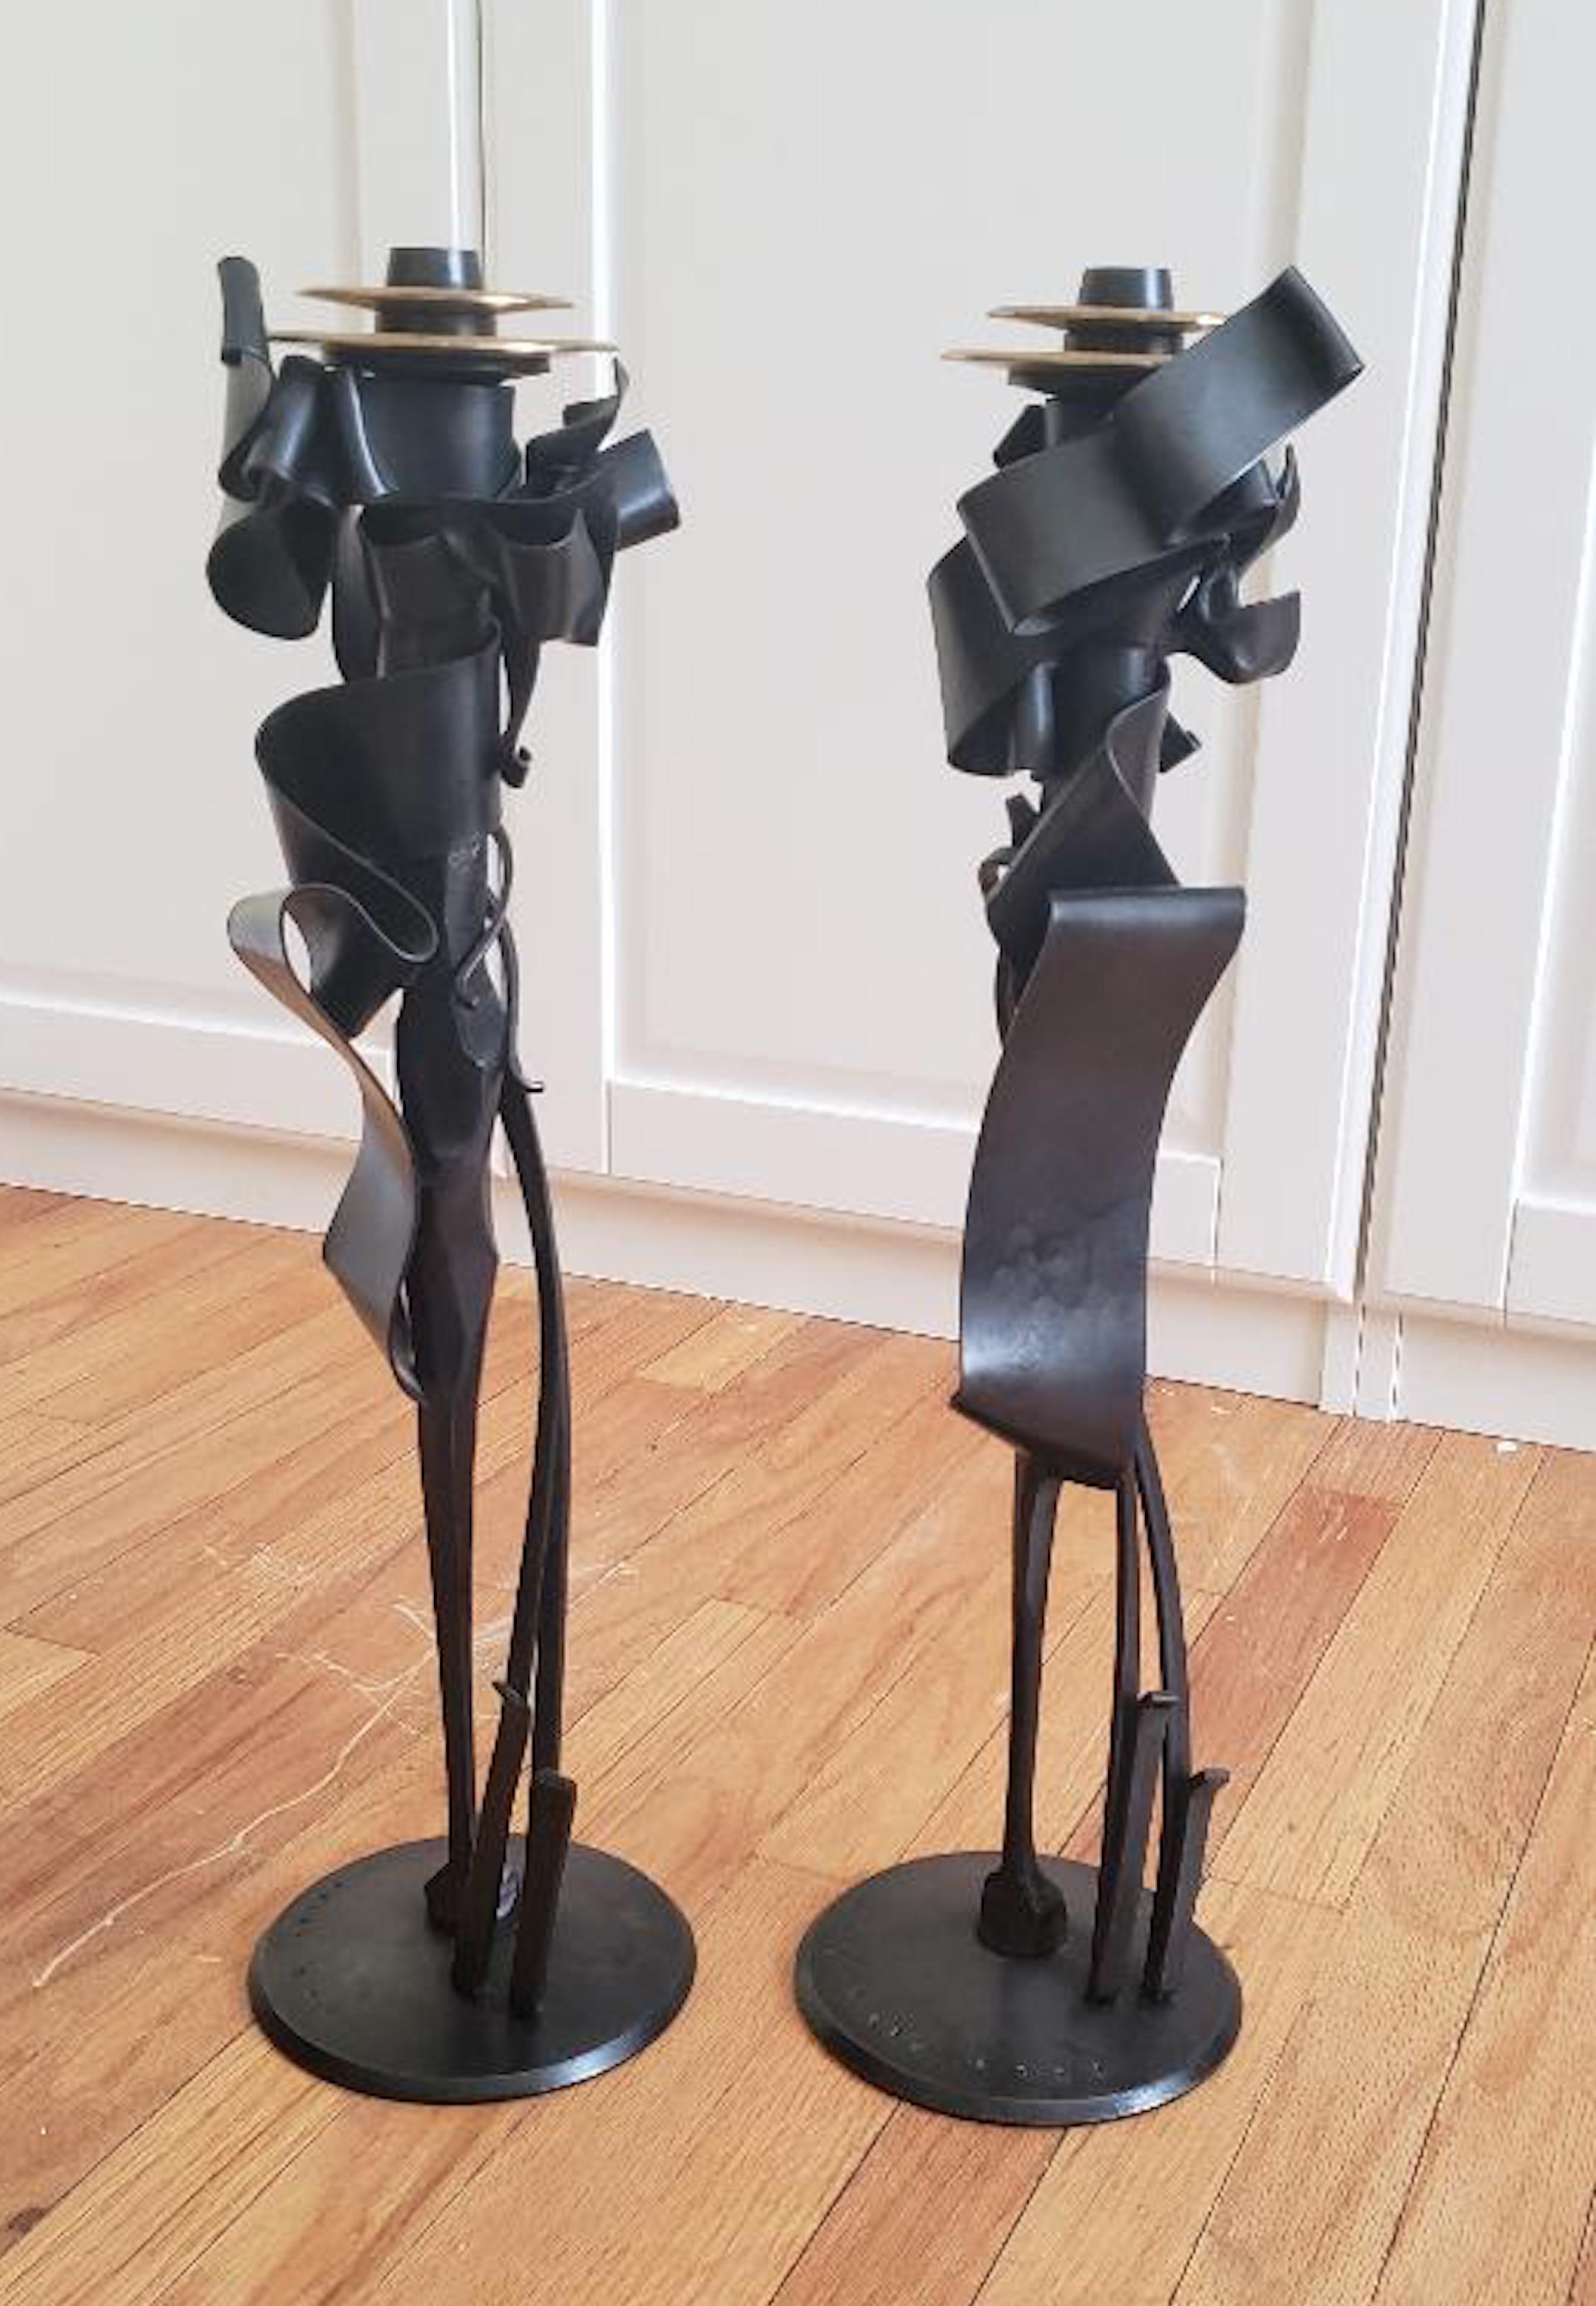 Calyx Candleholders artwork by Albert Paley - art listed for sale on Artplode